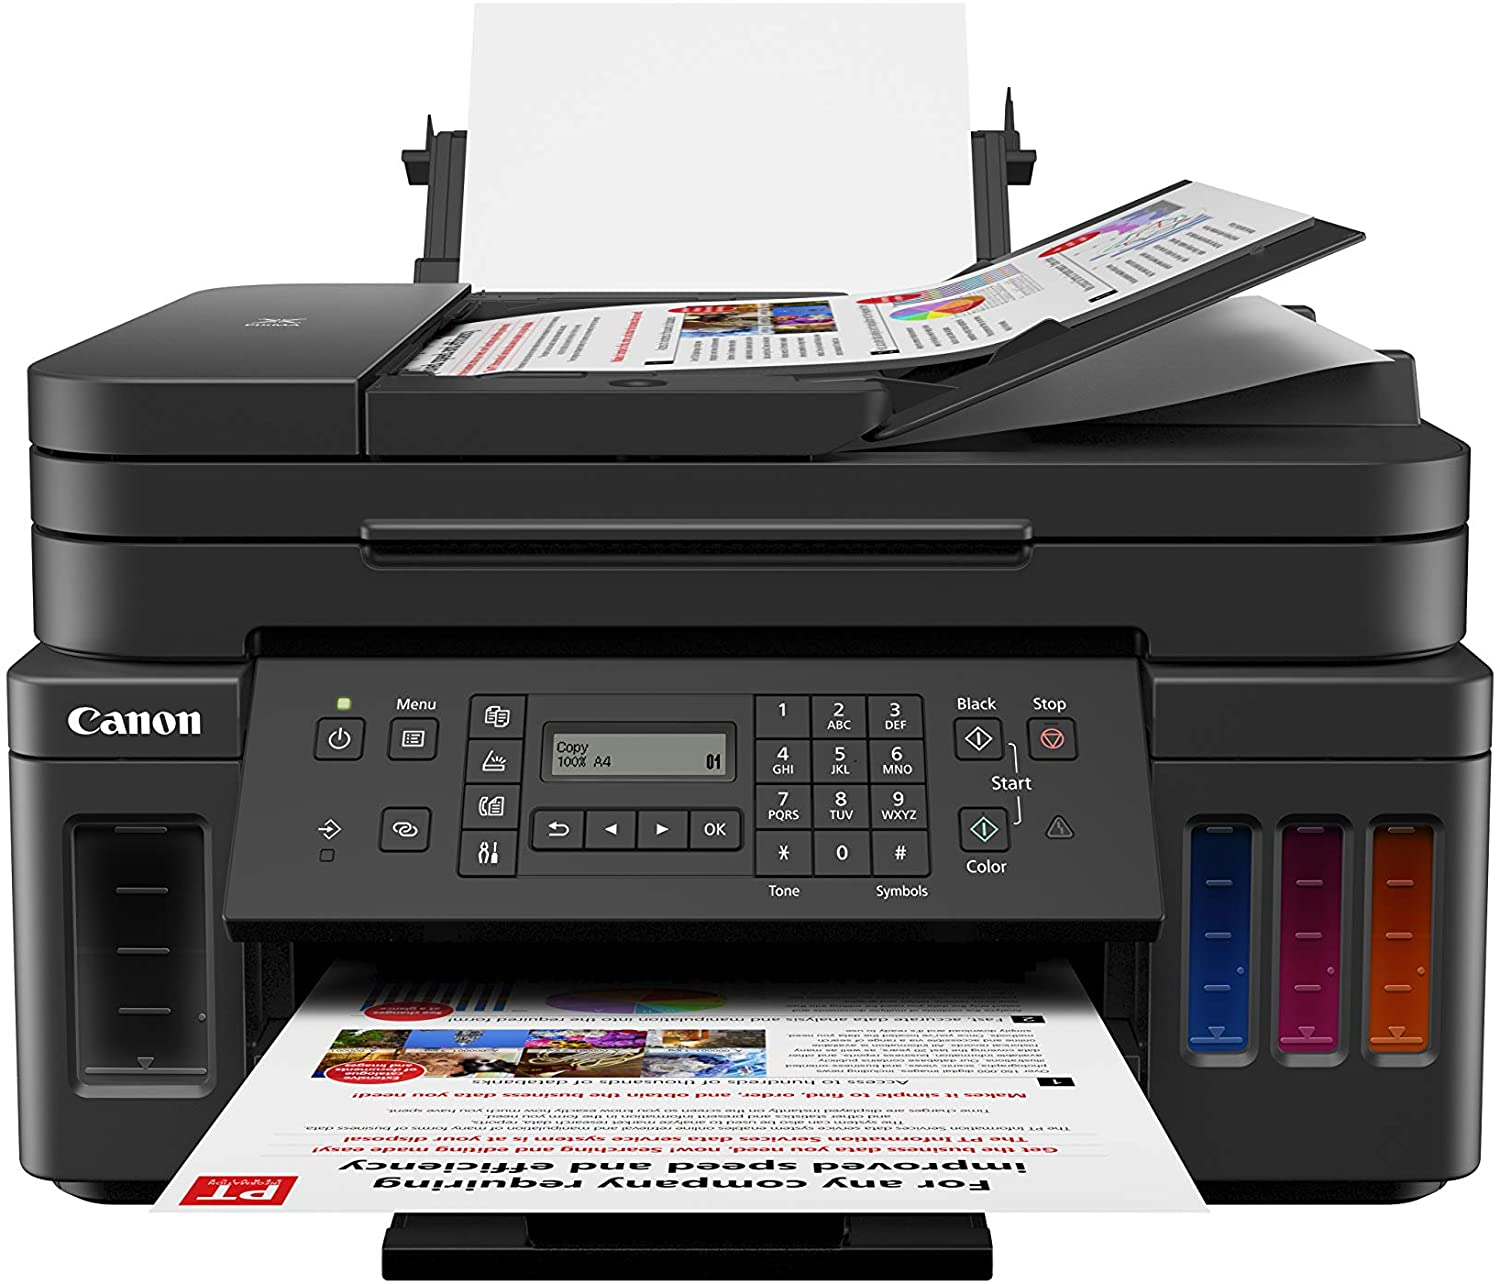 Best all in one laser printer for small business 2021